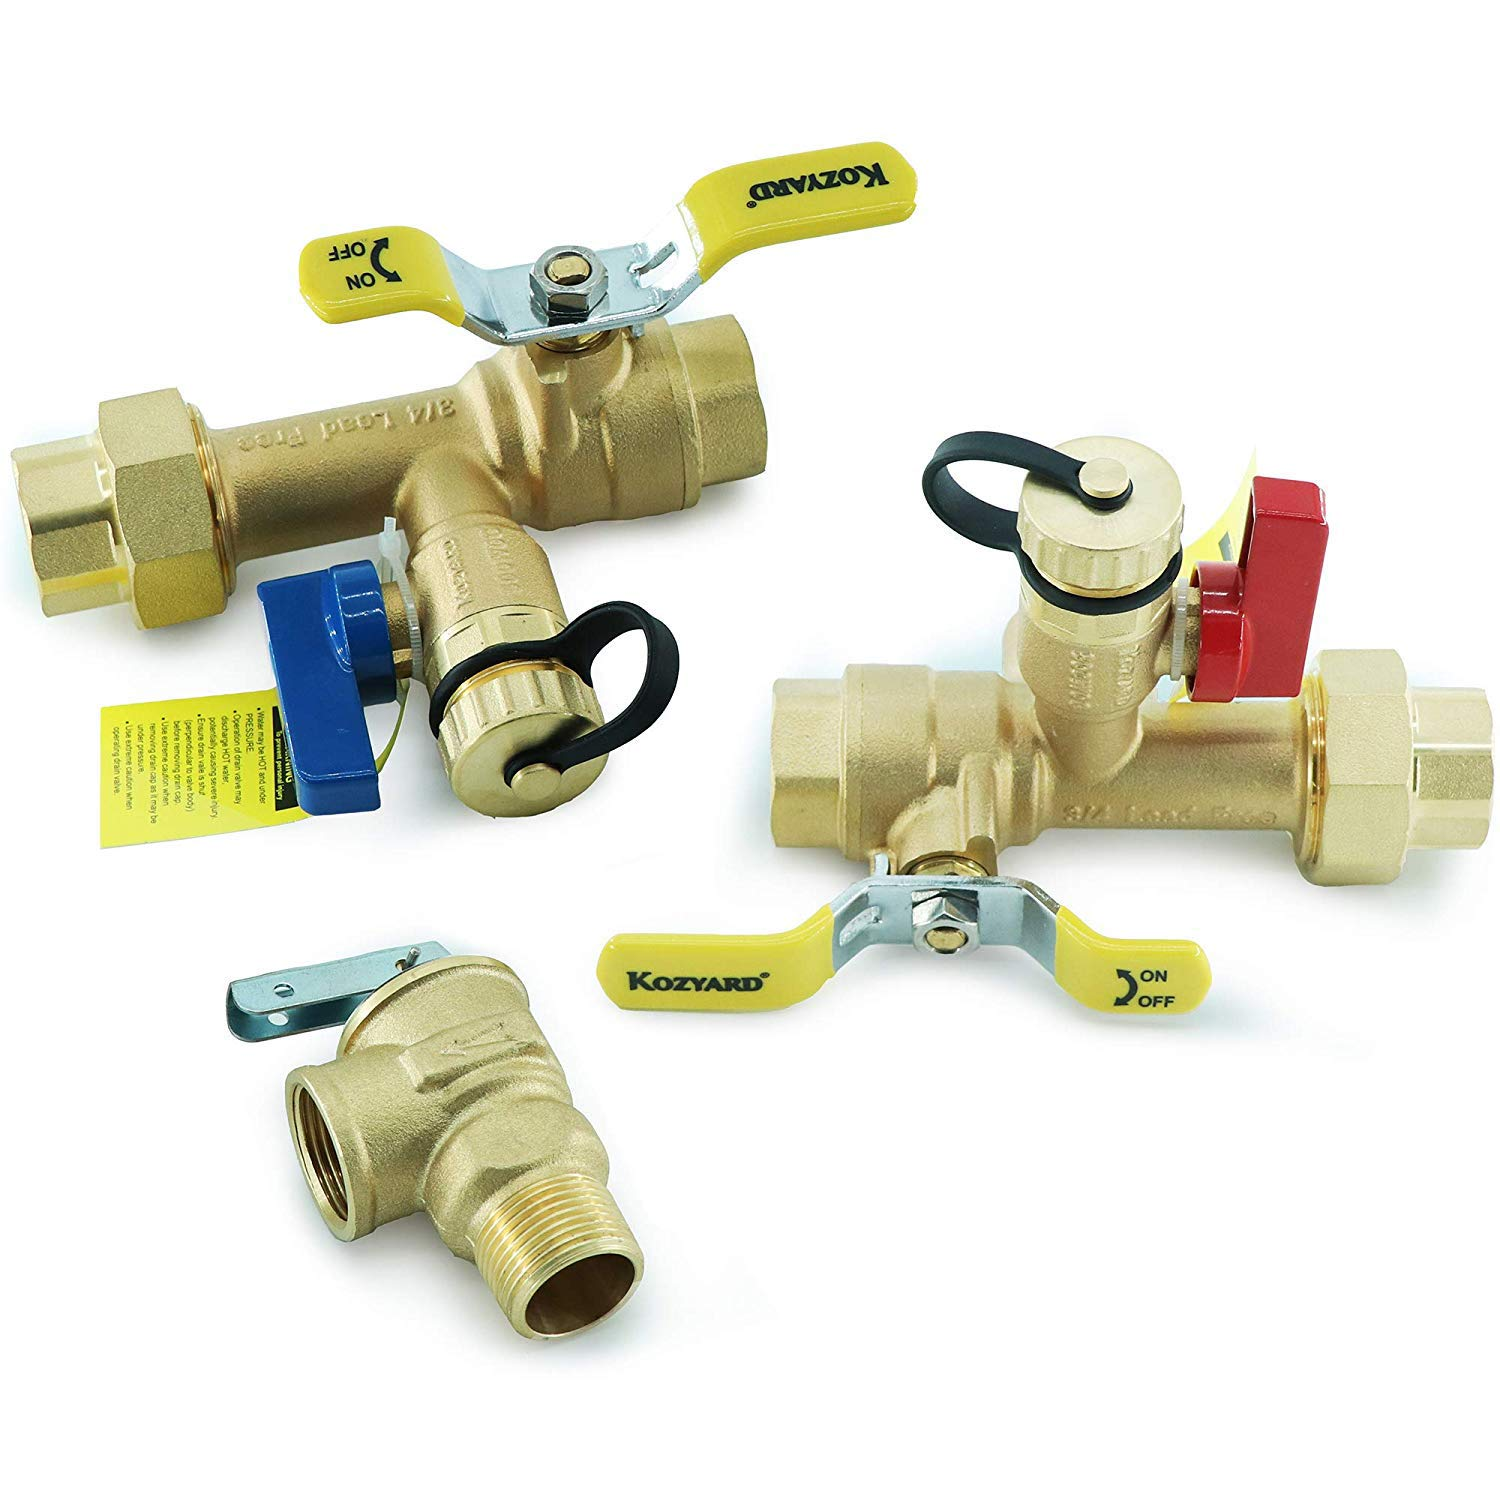 Kozyvacu 3/4-Inch IPS Isolator Tankless Water Heater Service Valve Kit with Clean Brass Construction by Kozyvacu